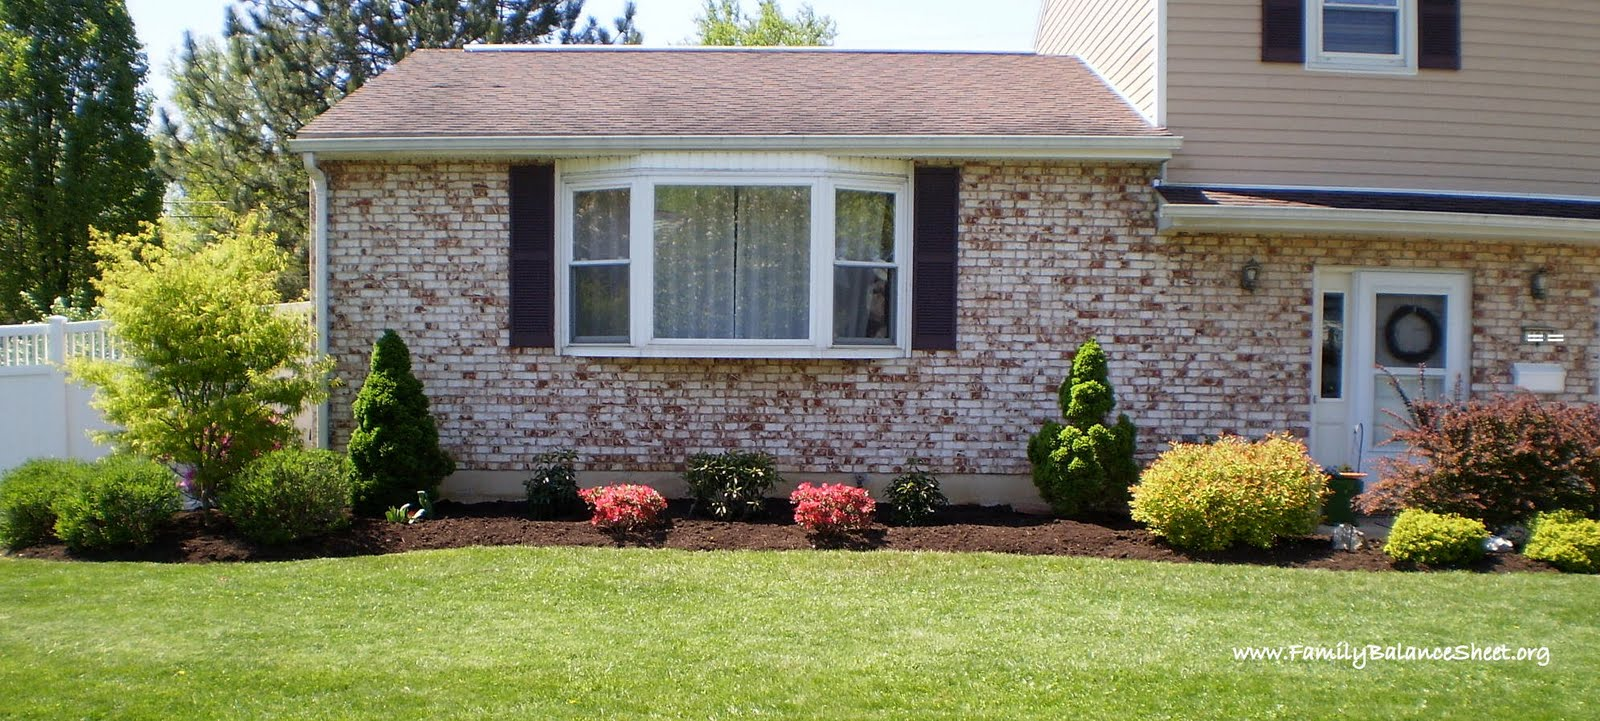 15 tips to help you design your front yard save money too for Easy landscape design